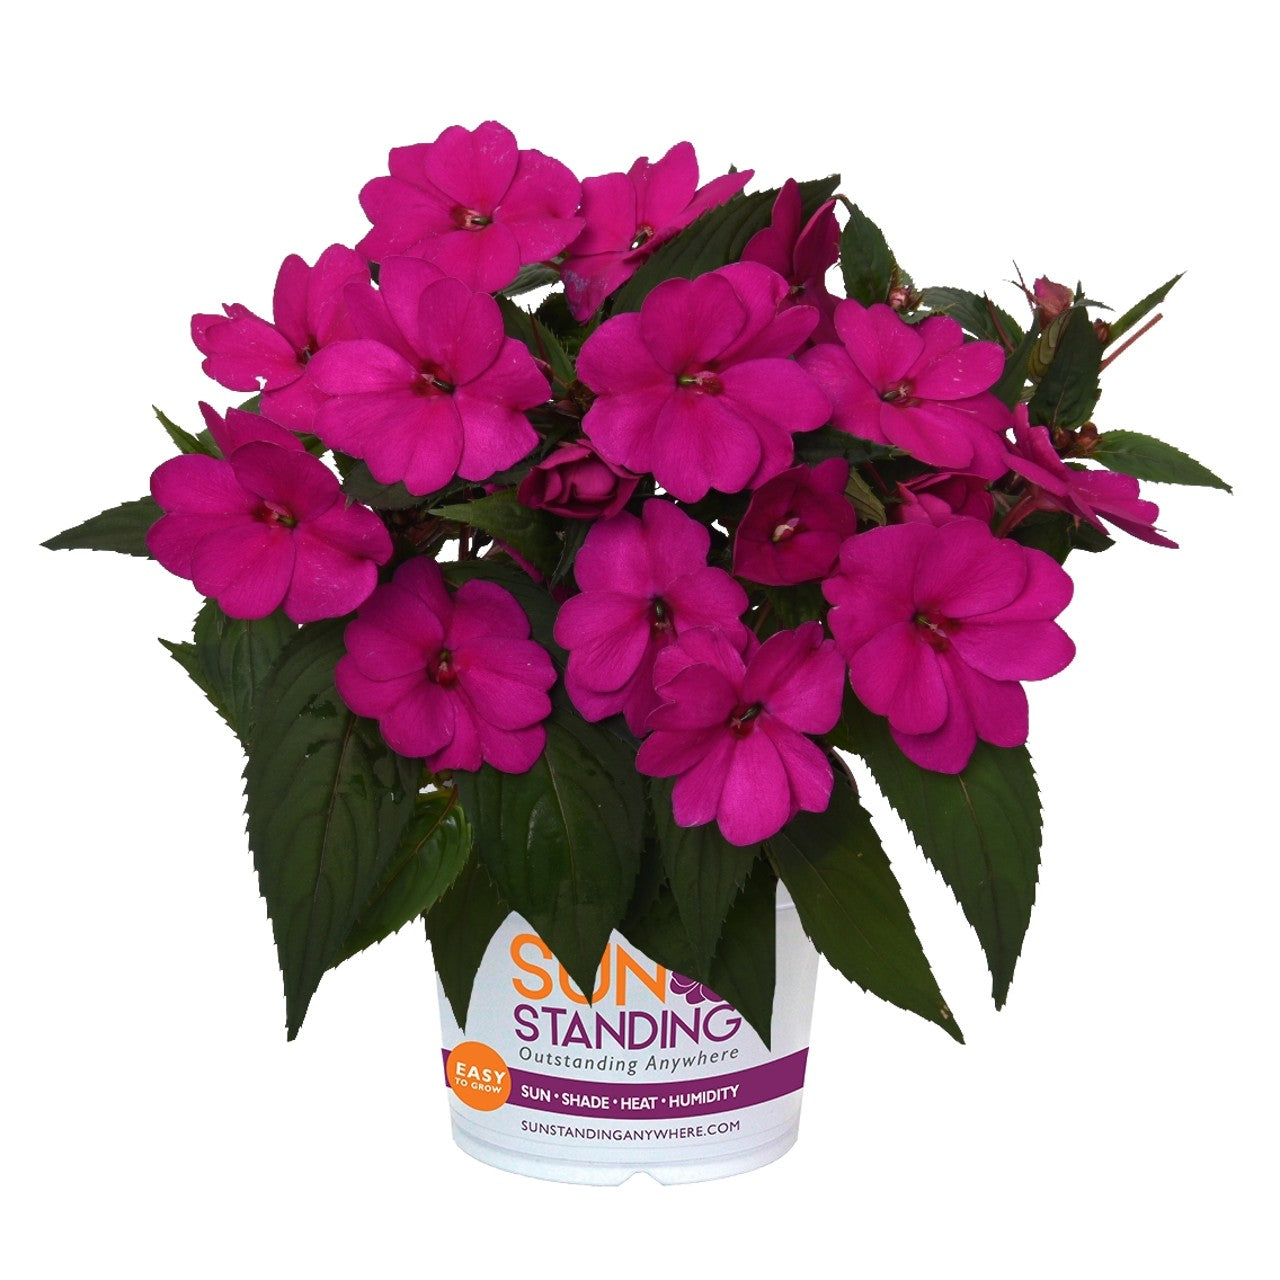 IMPATIENS NEW GUINEA SUNSTANDING Apollo Purple